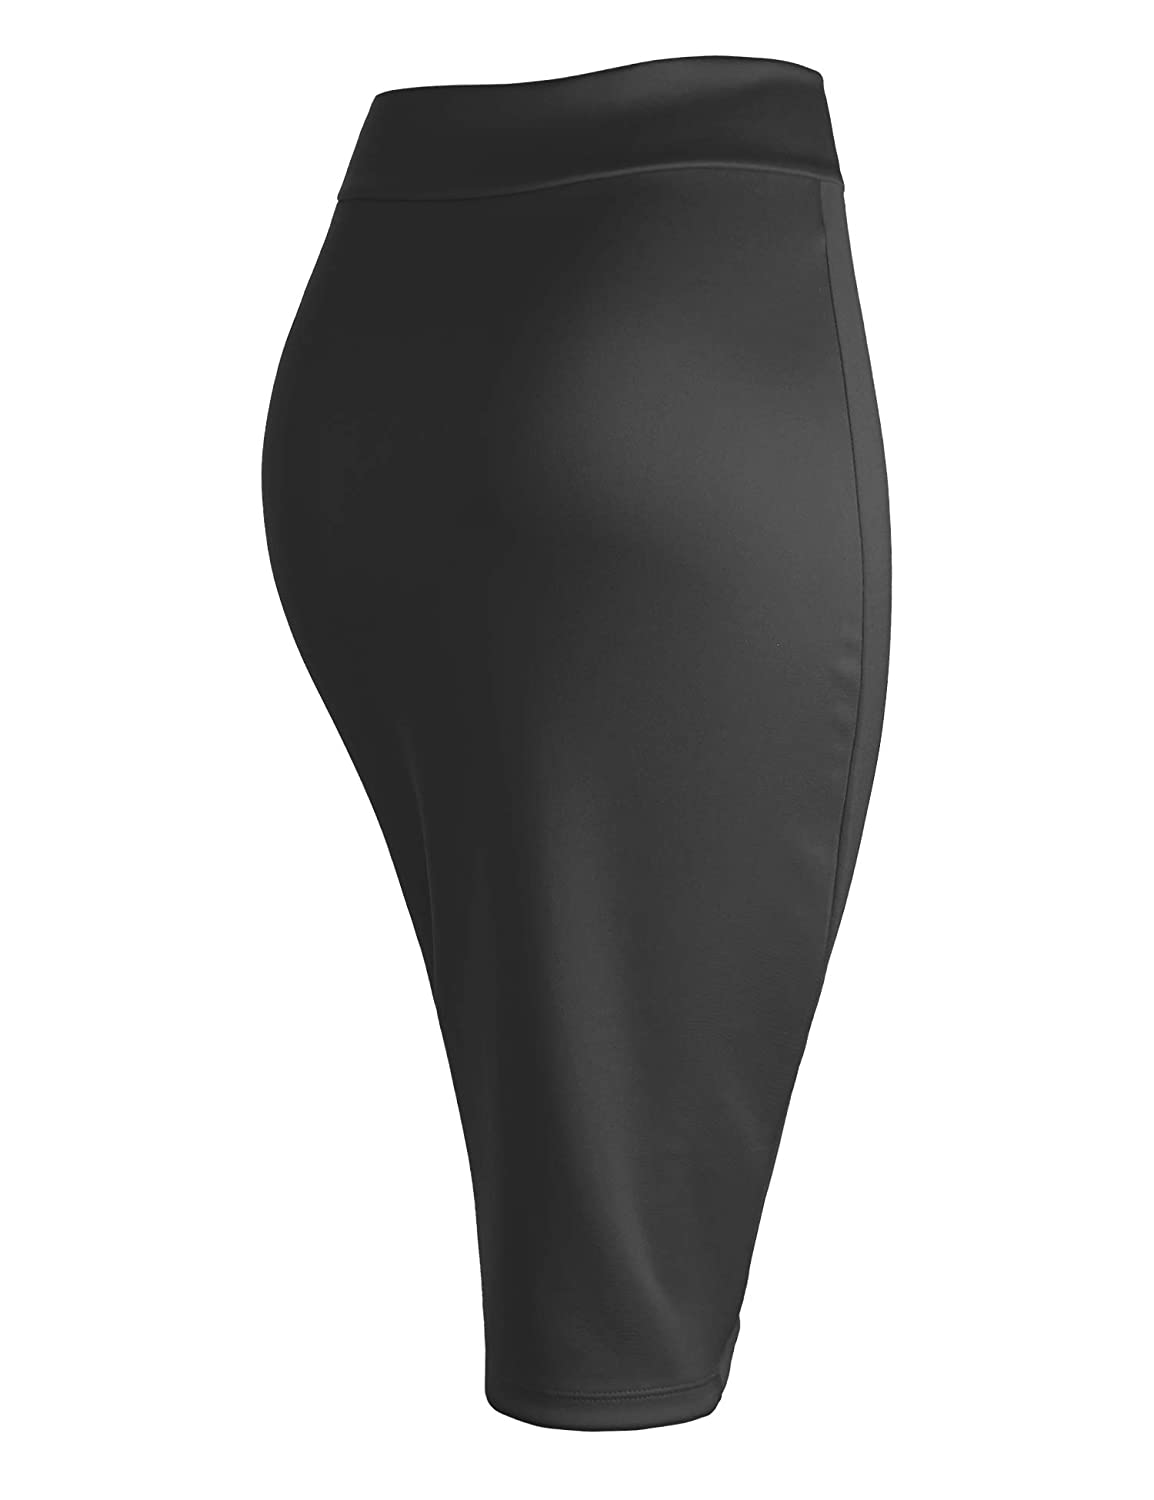 Made in USA Made By Johnny Womens Elastic Waist Stretch Bodycon Midi Knee Length Pencil Skirt for Office